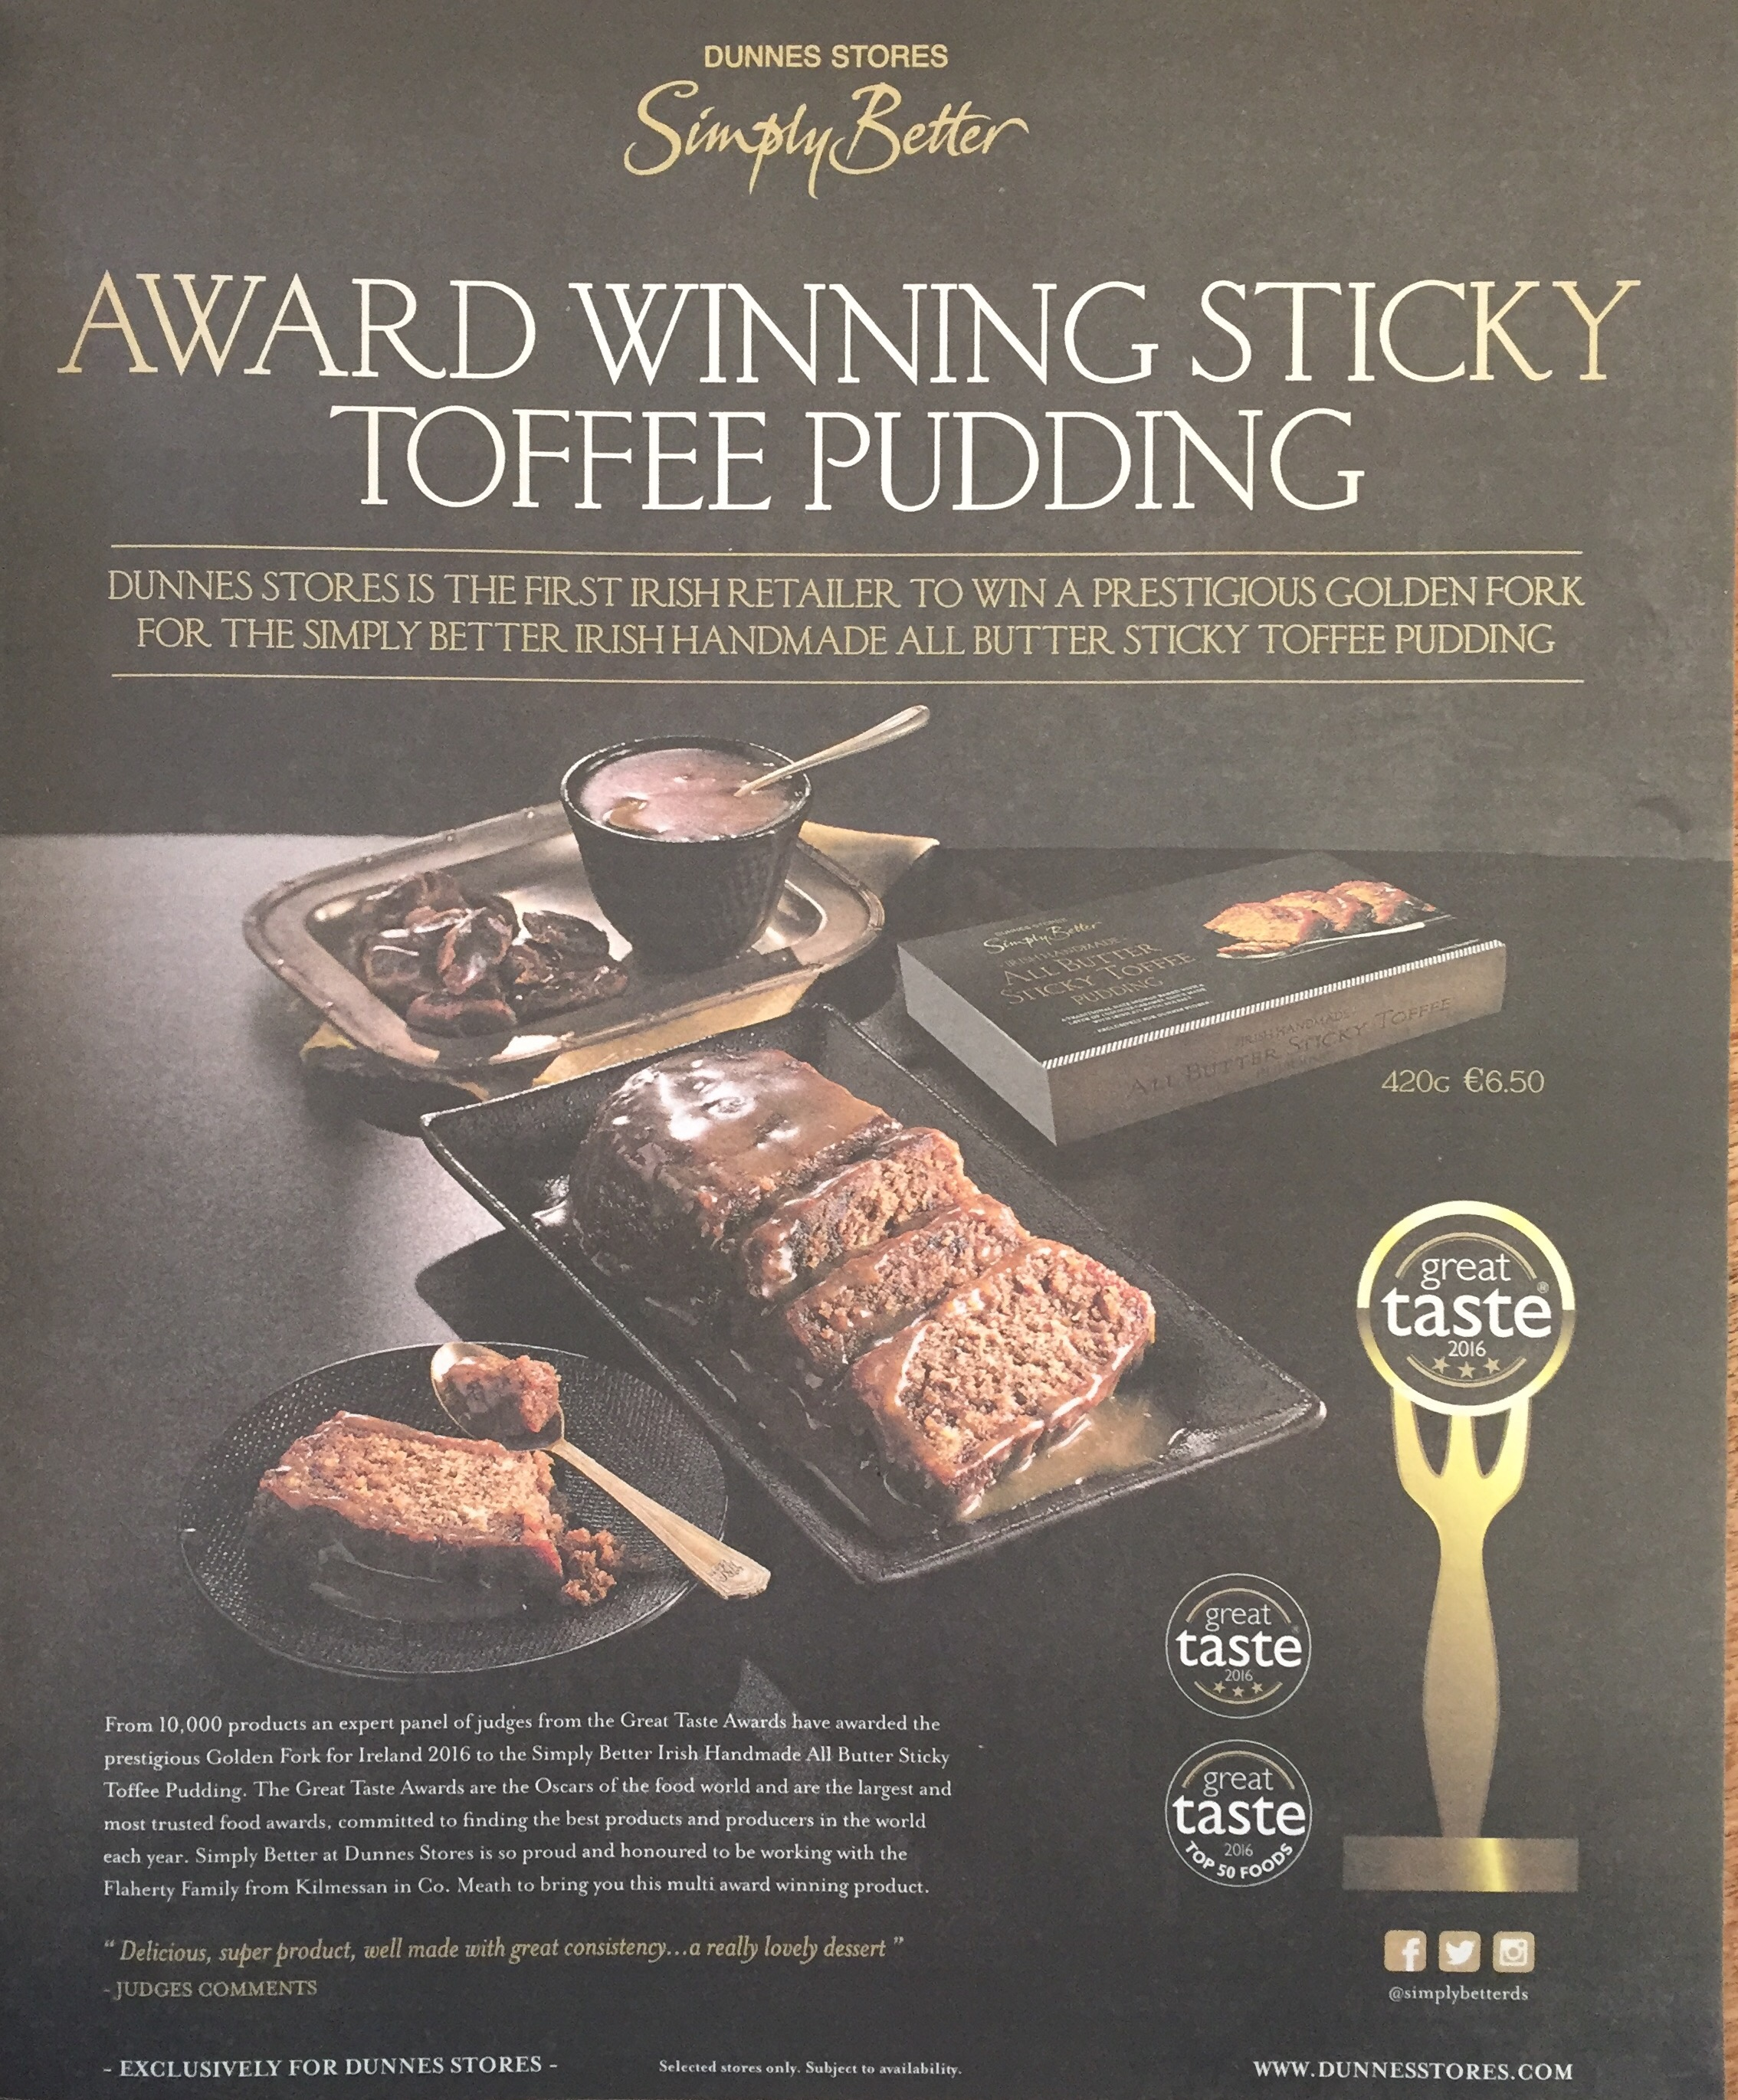 Dunnes stores – award winning sticky toffee pudding